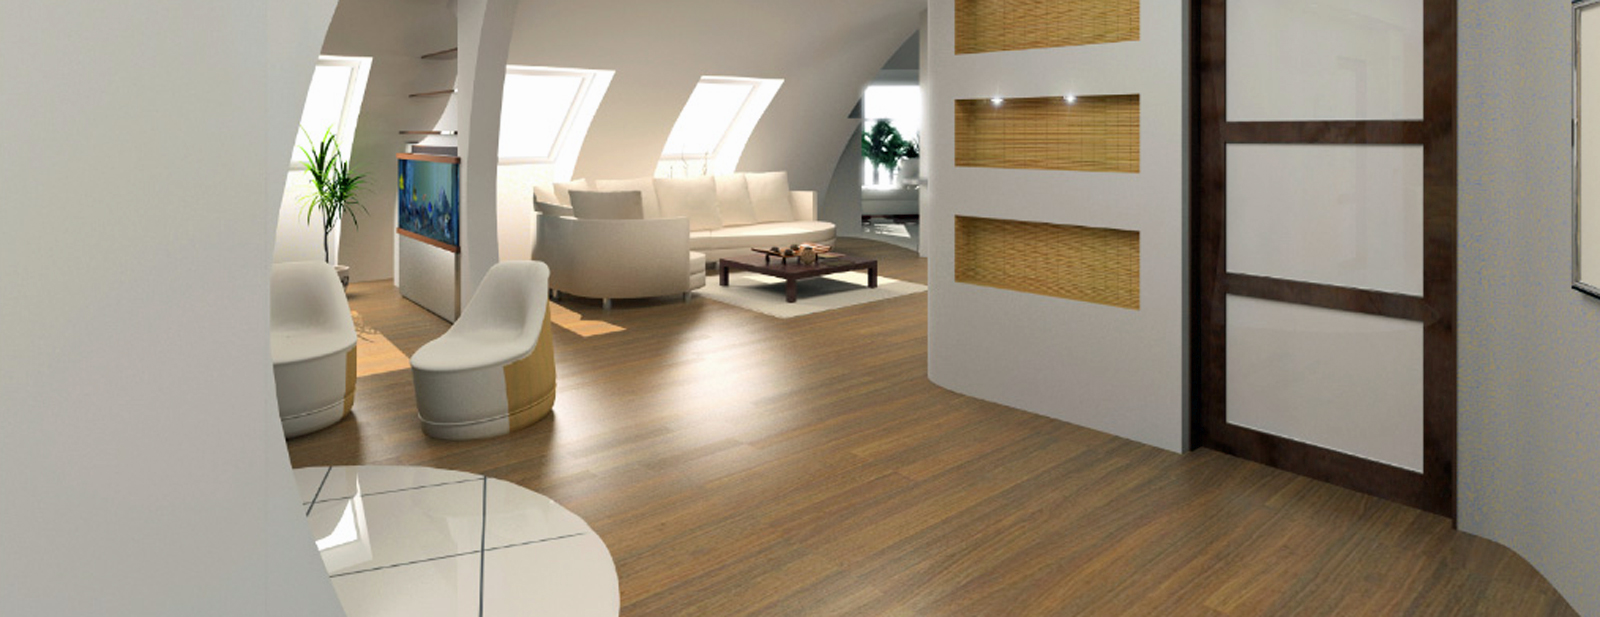 floors laminate builddirect results vert sku plank flooring